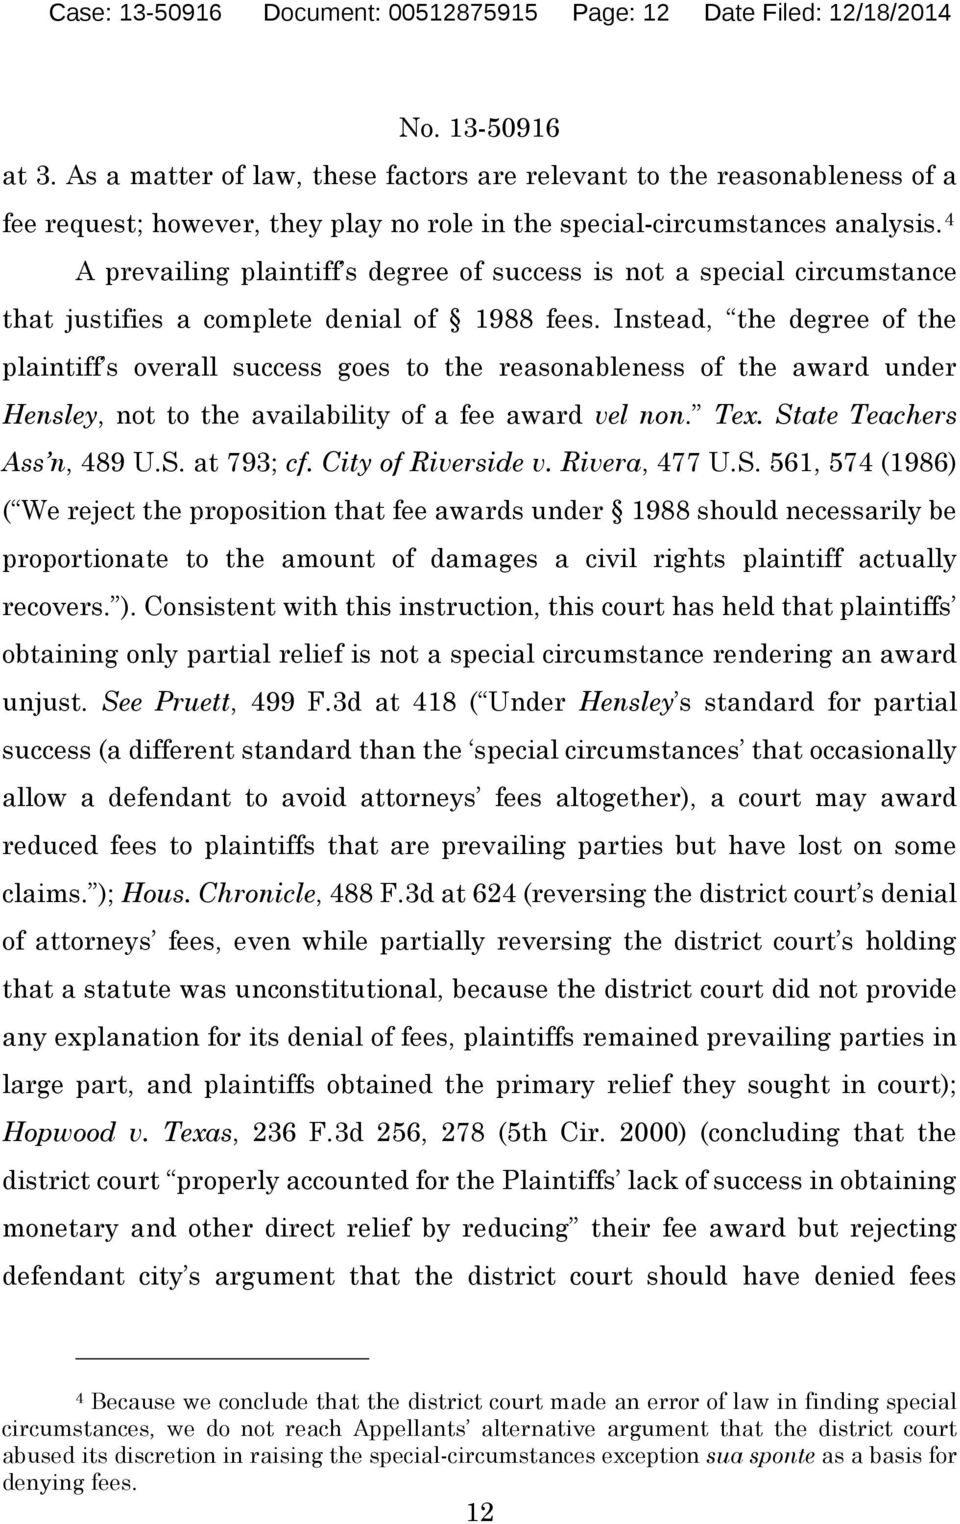 4 A prevailing plaintiff s degree of success is not a special circumstance that justifies a complete denial of 1988 fees.